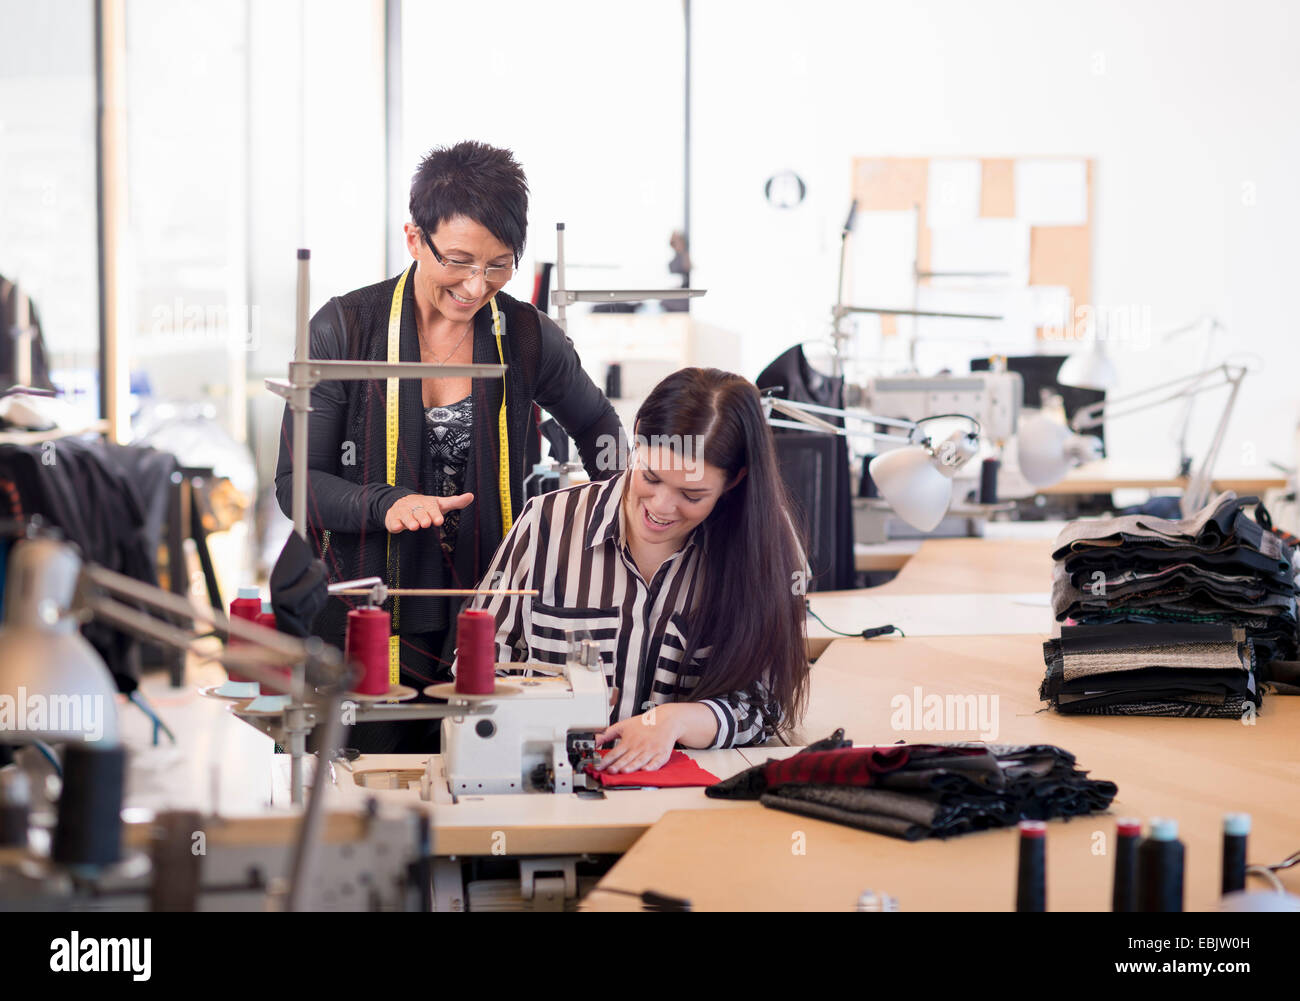 Two seamstresses at sewing machine in workshop - Stock Image